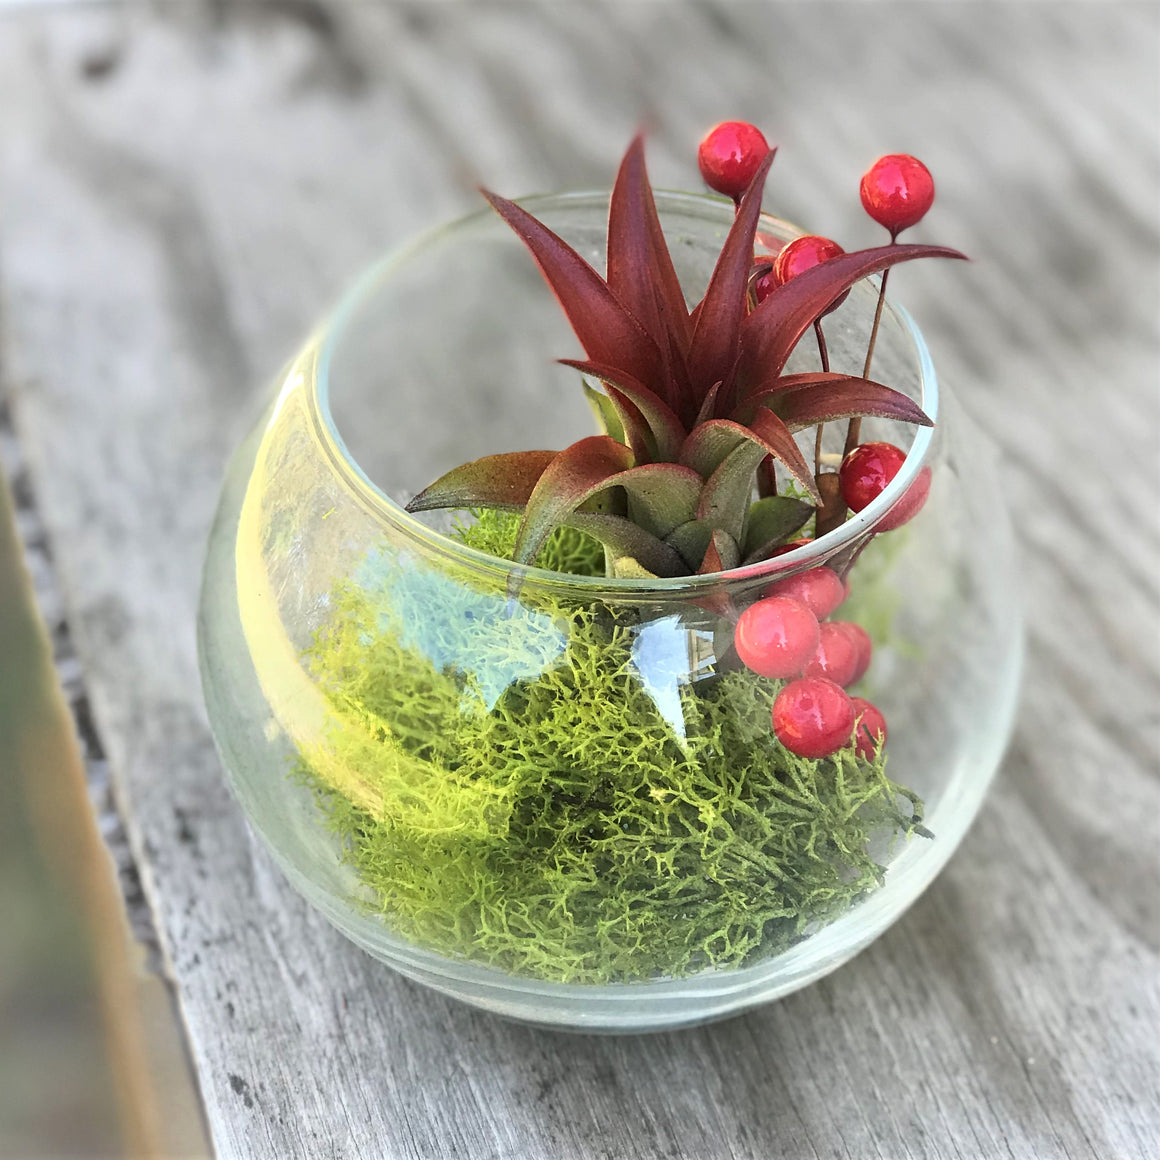 Festive Terrarium with Green Reindeer Moss, Berry Sprig, & Red Abdita Air Plant